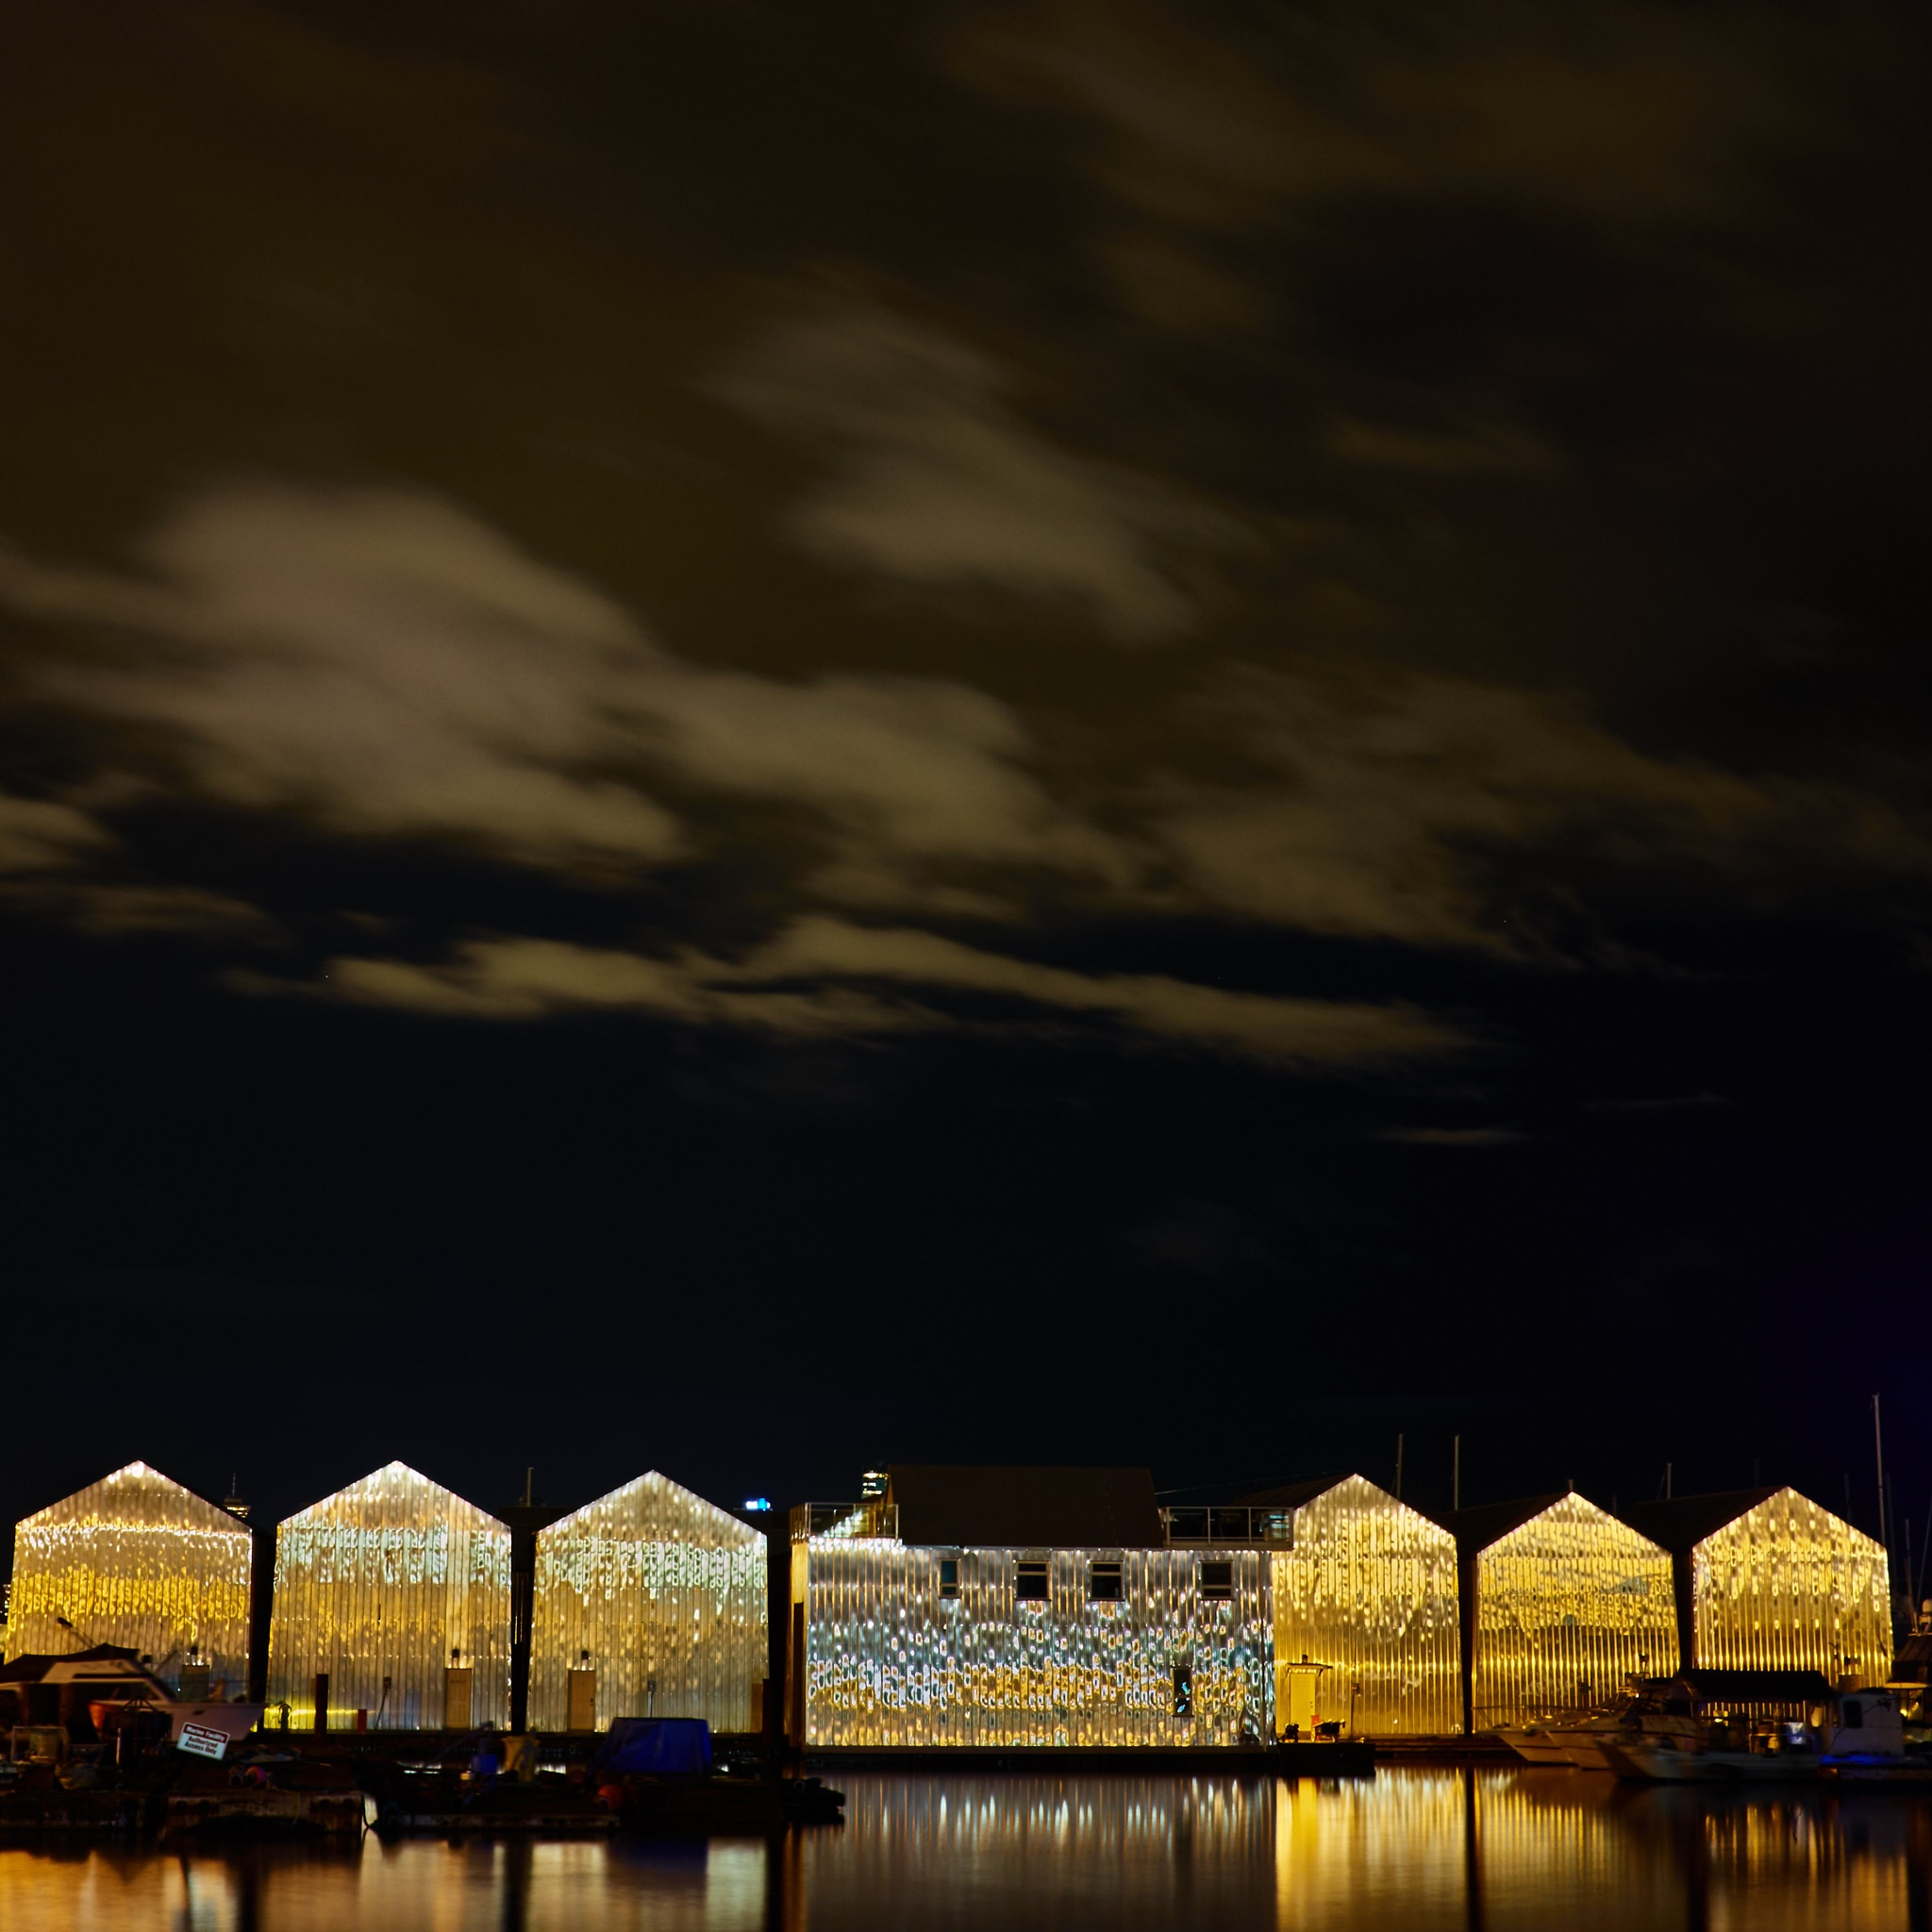 Boathouses at night by Greg Mullaly